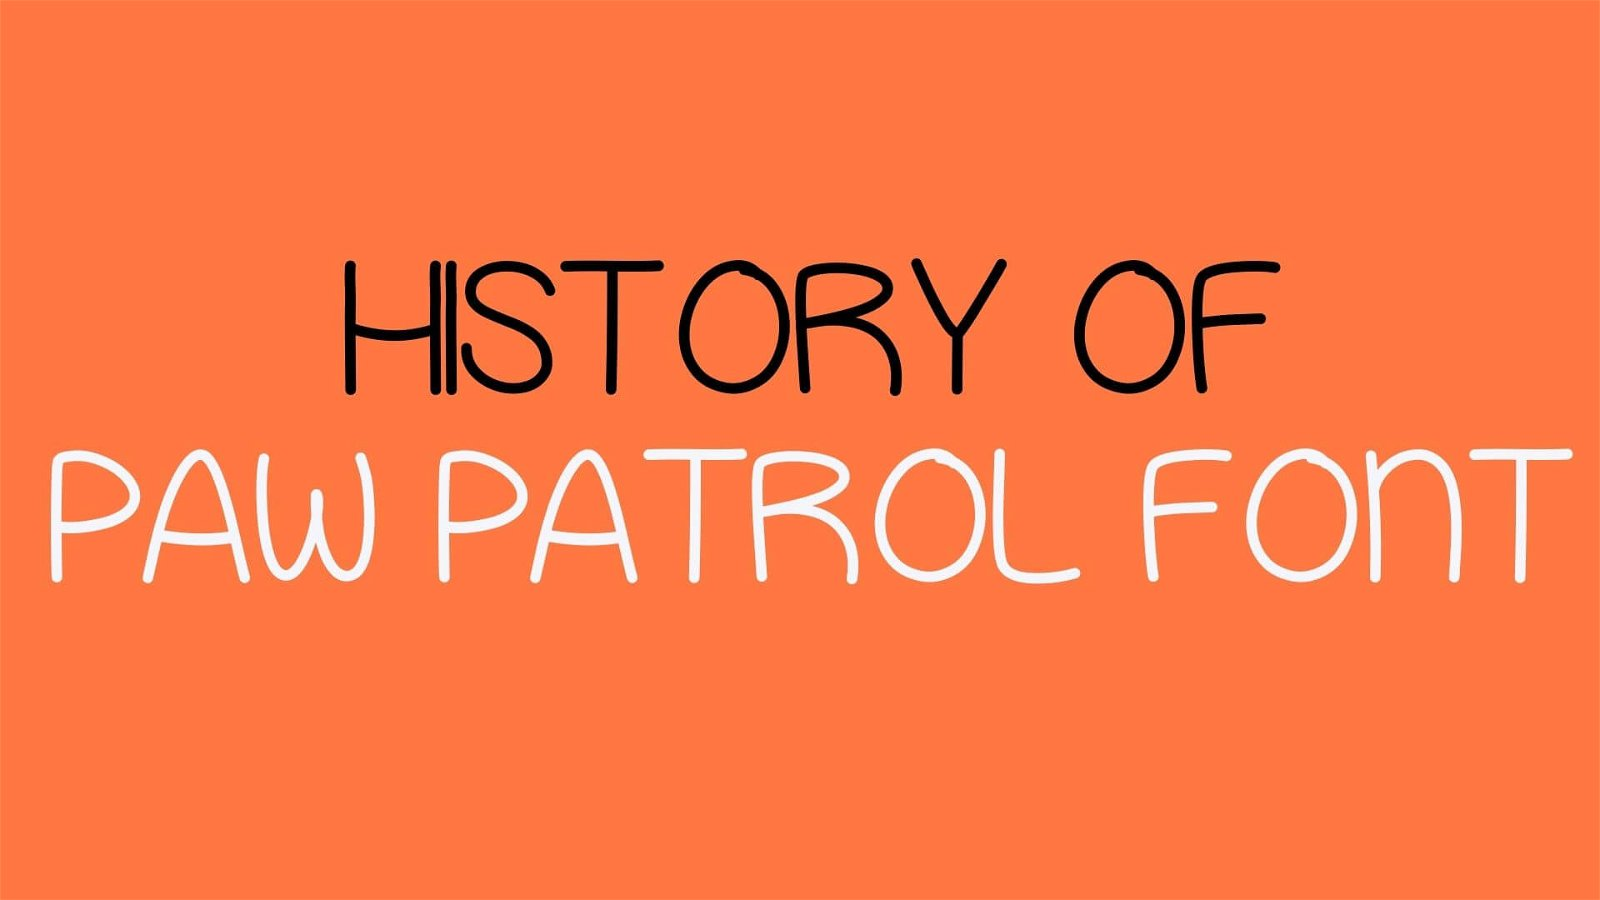 History of Paw Patrol Font